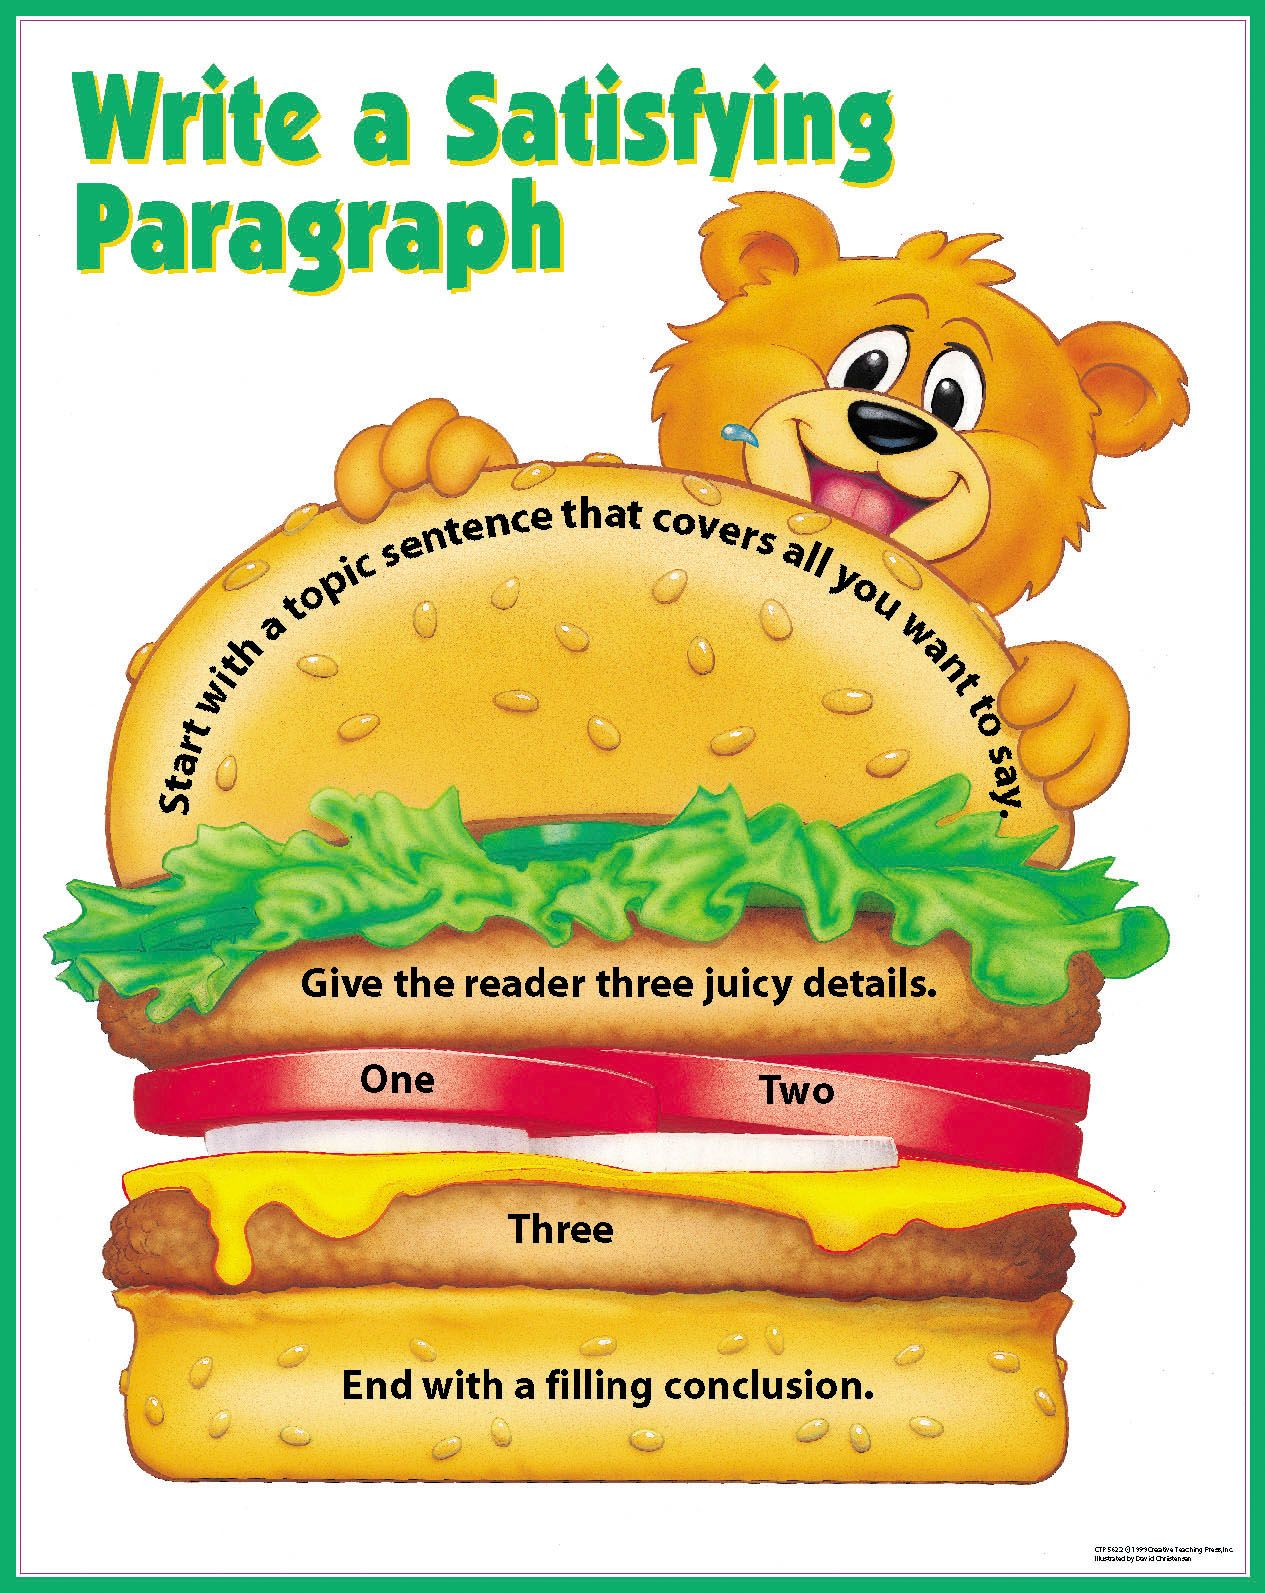 write a satisfying paragraph